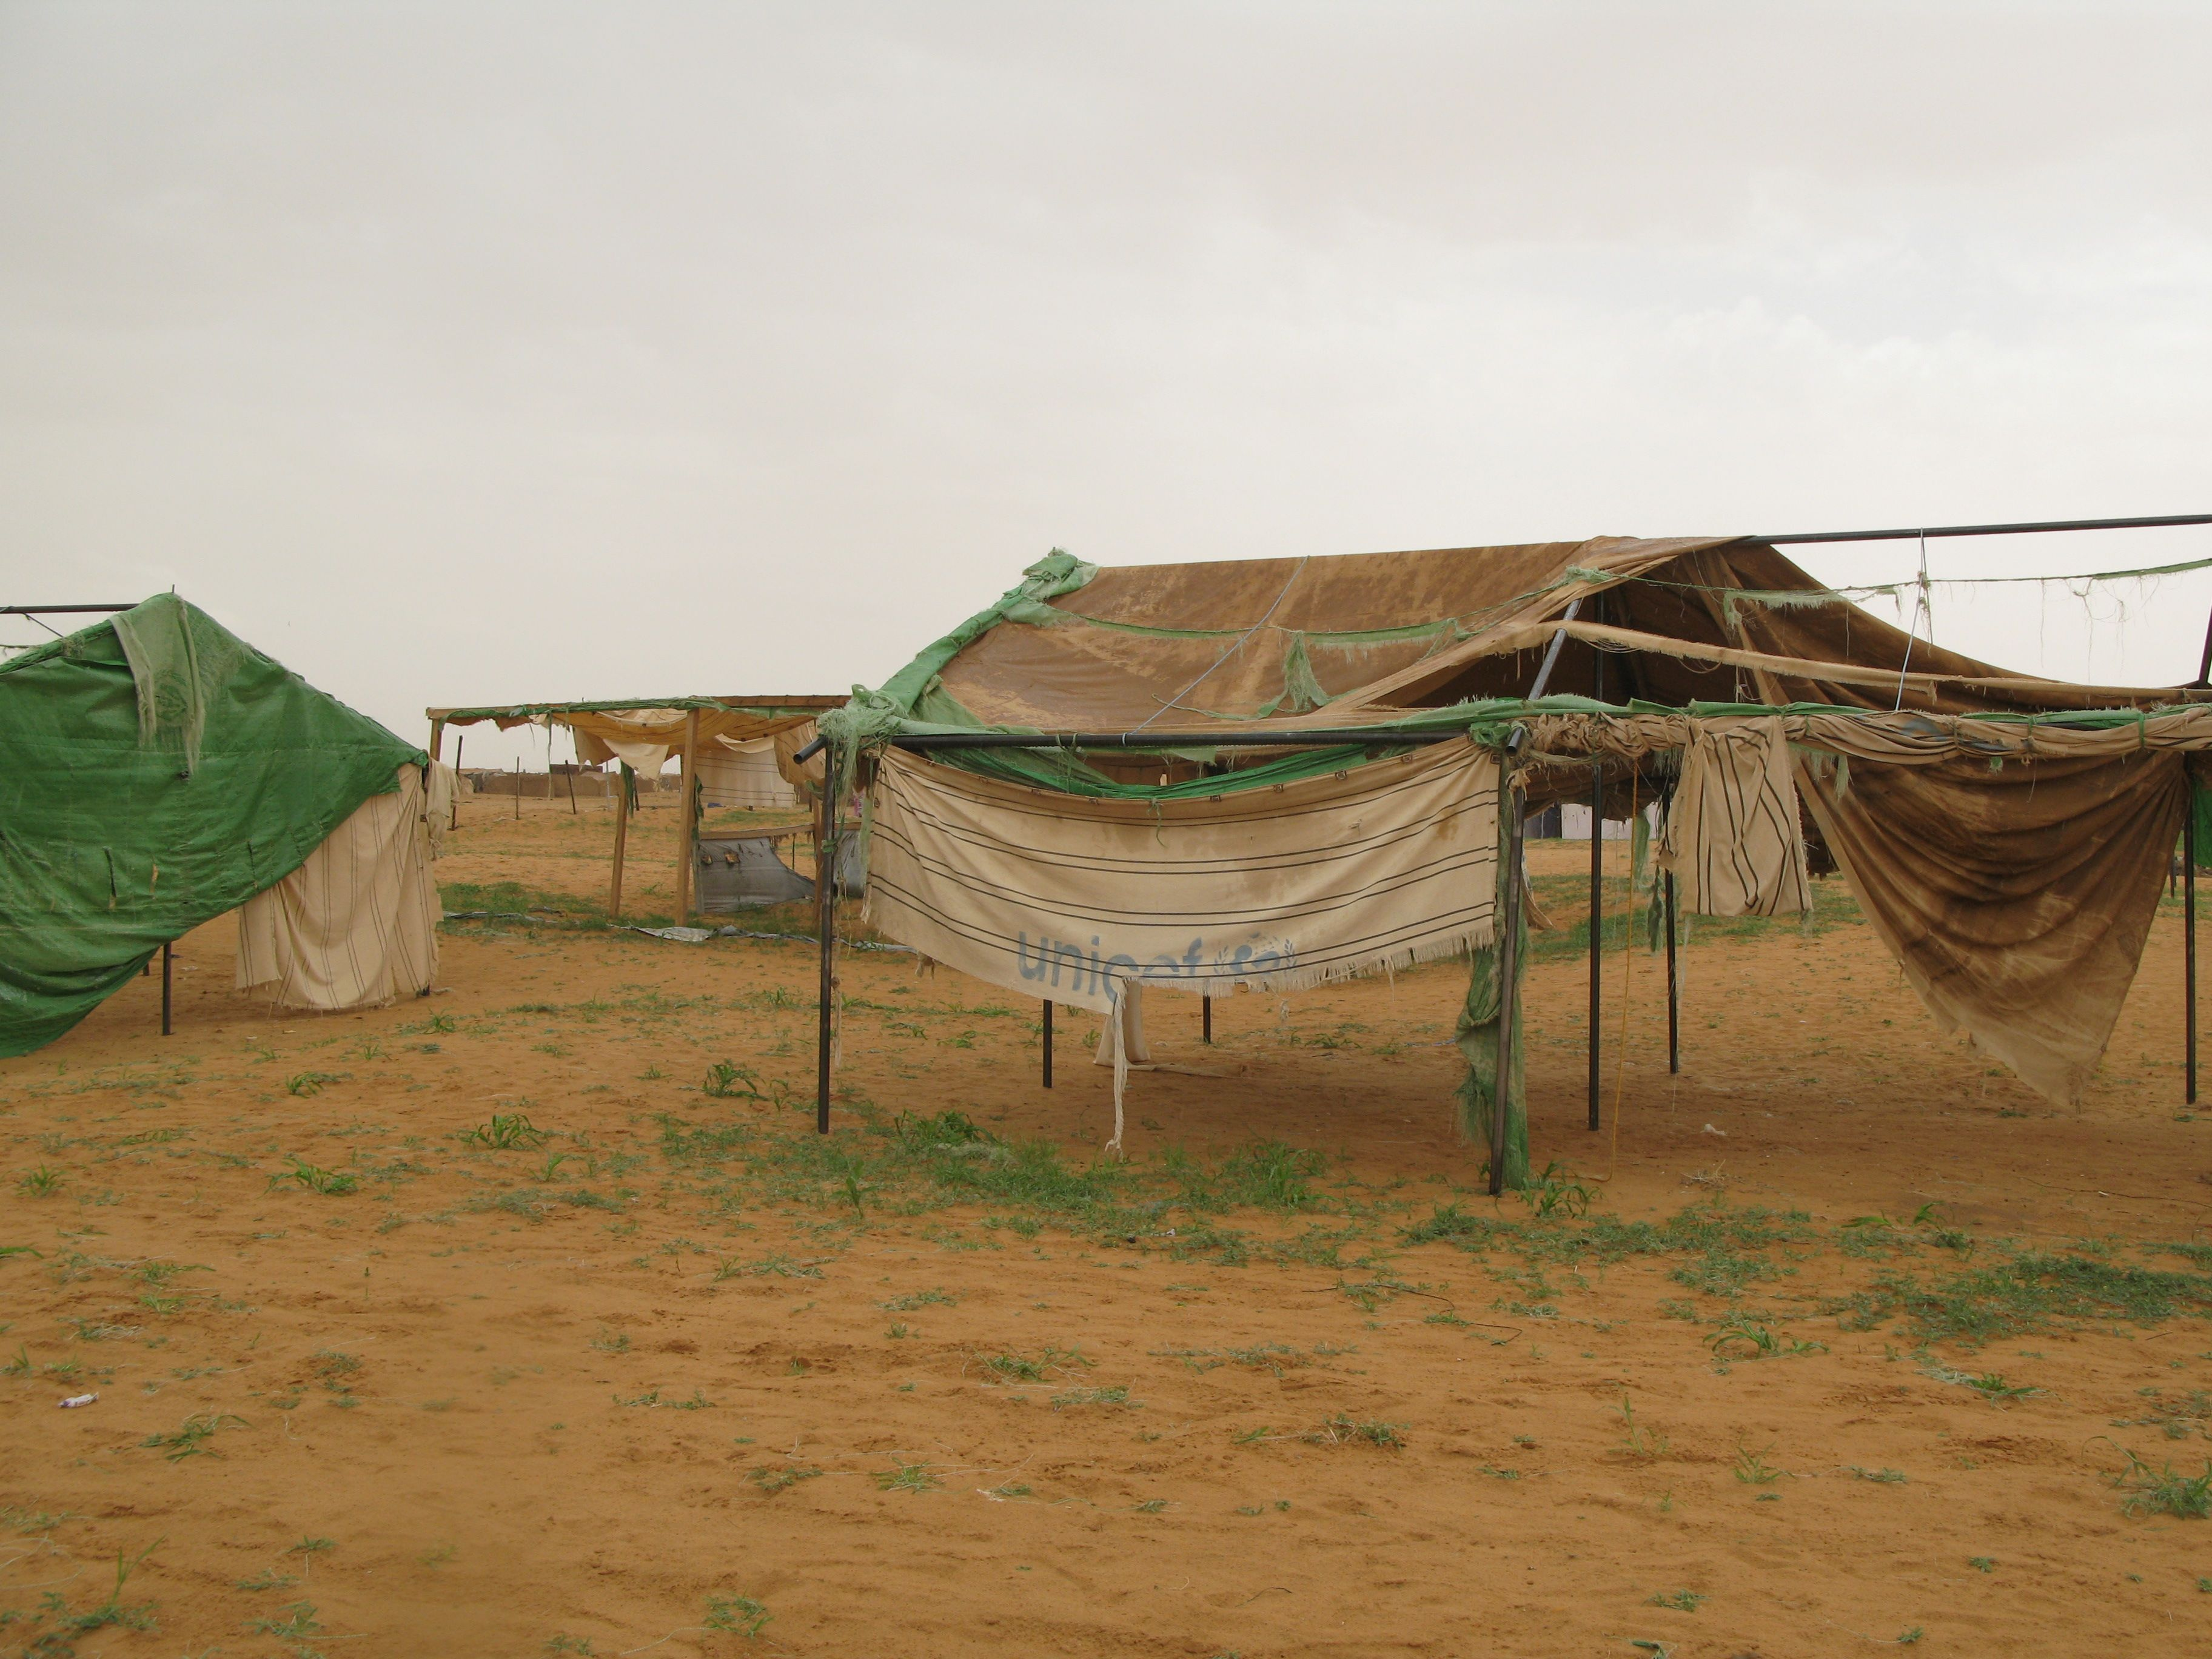 Temporary housing for refugees from Darfur in the Oure Cassoni refugee camp in Chad, near the border with Sudan